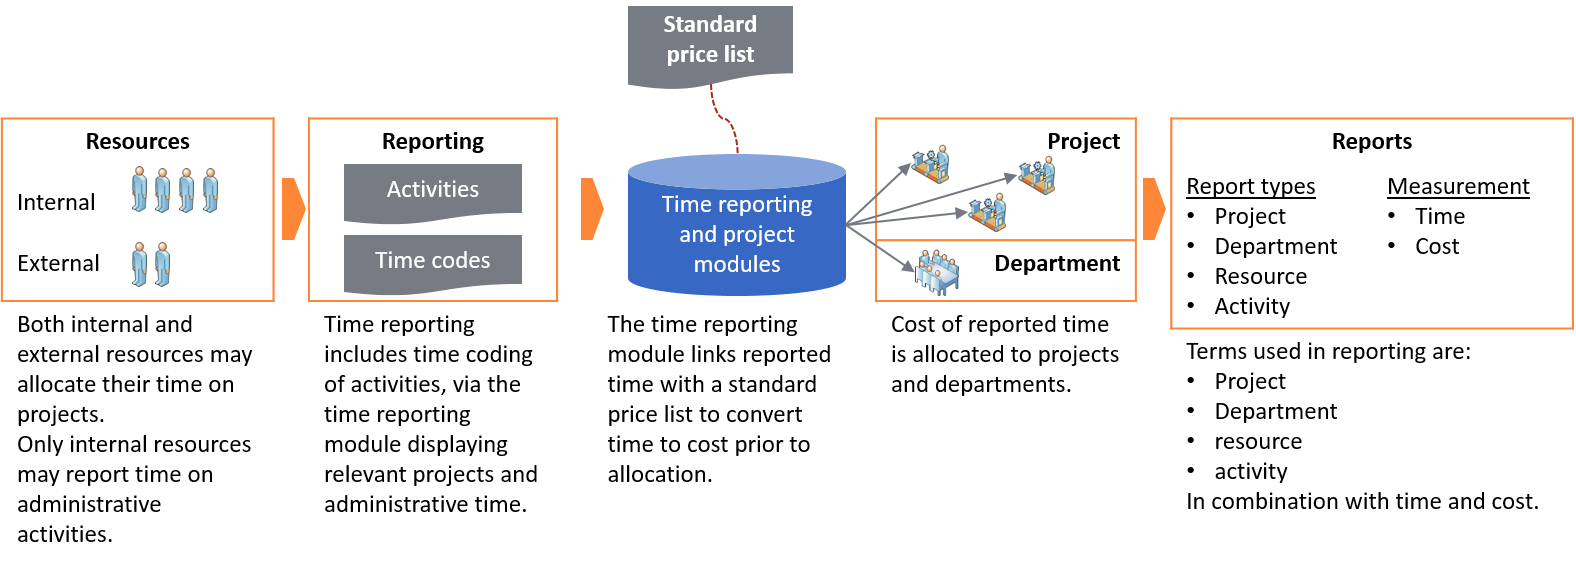 Description of time reporting